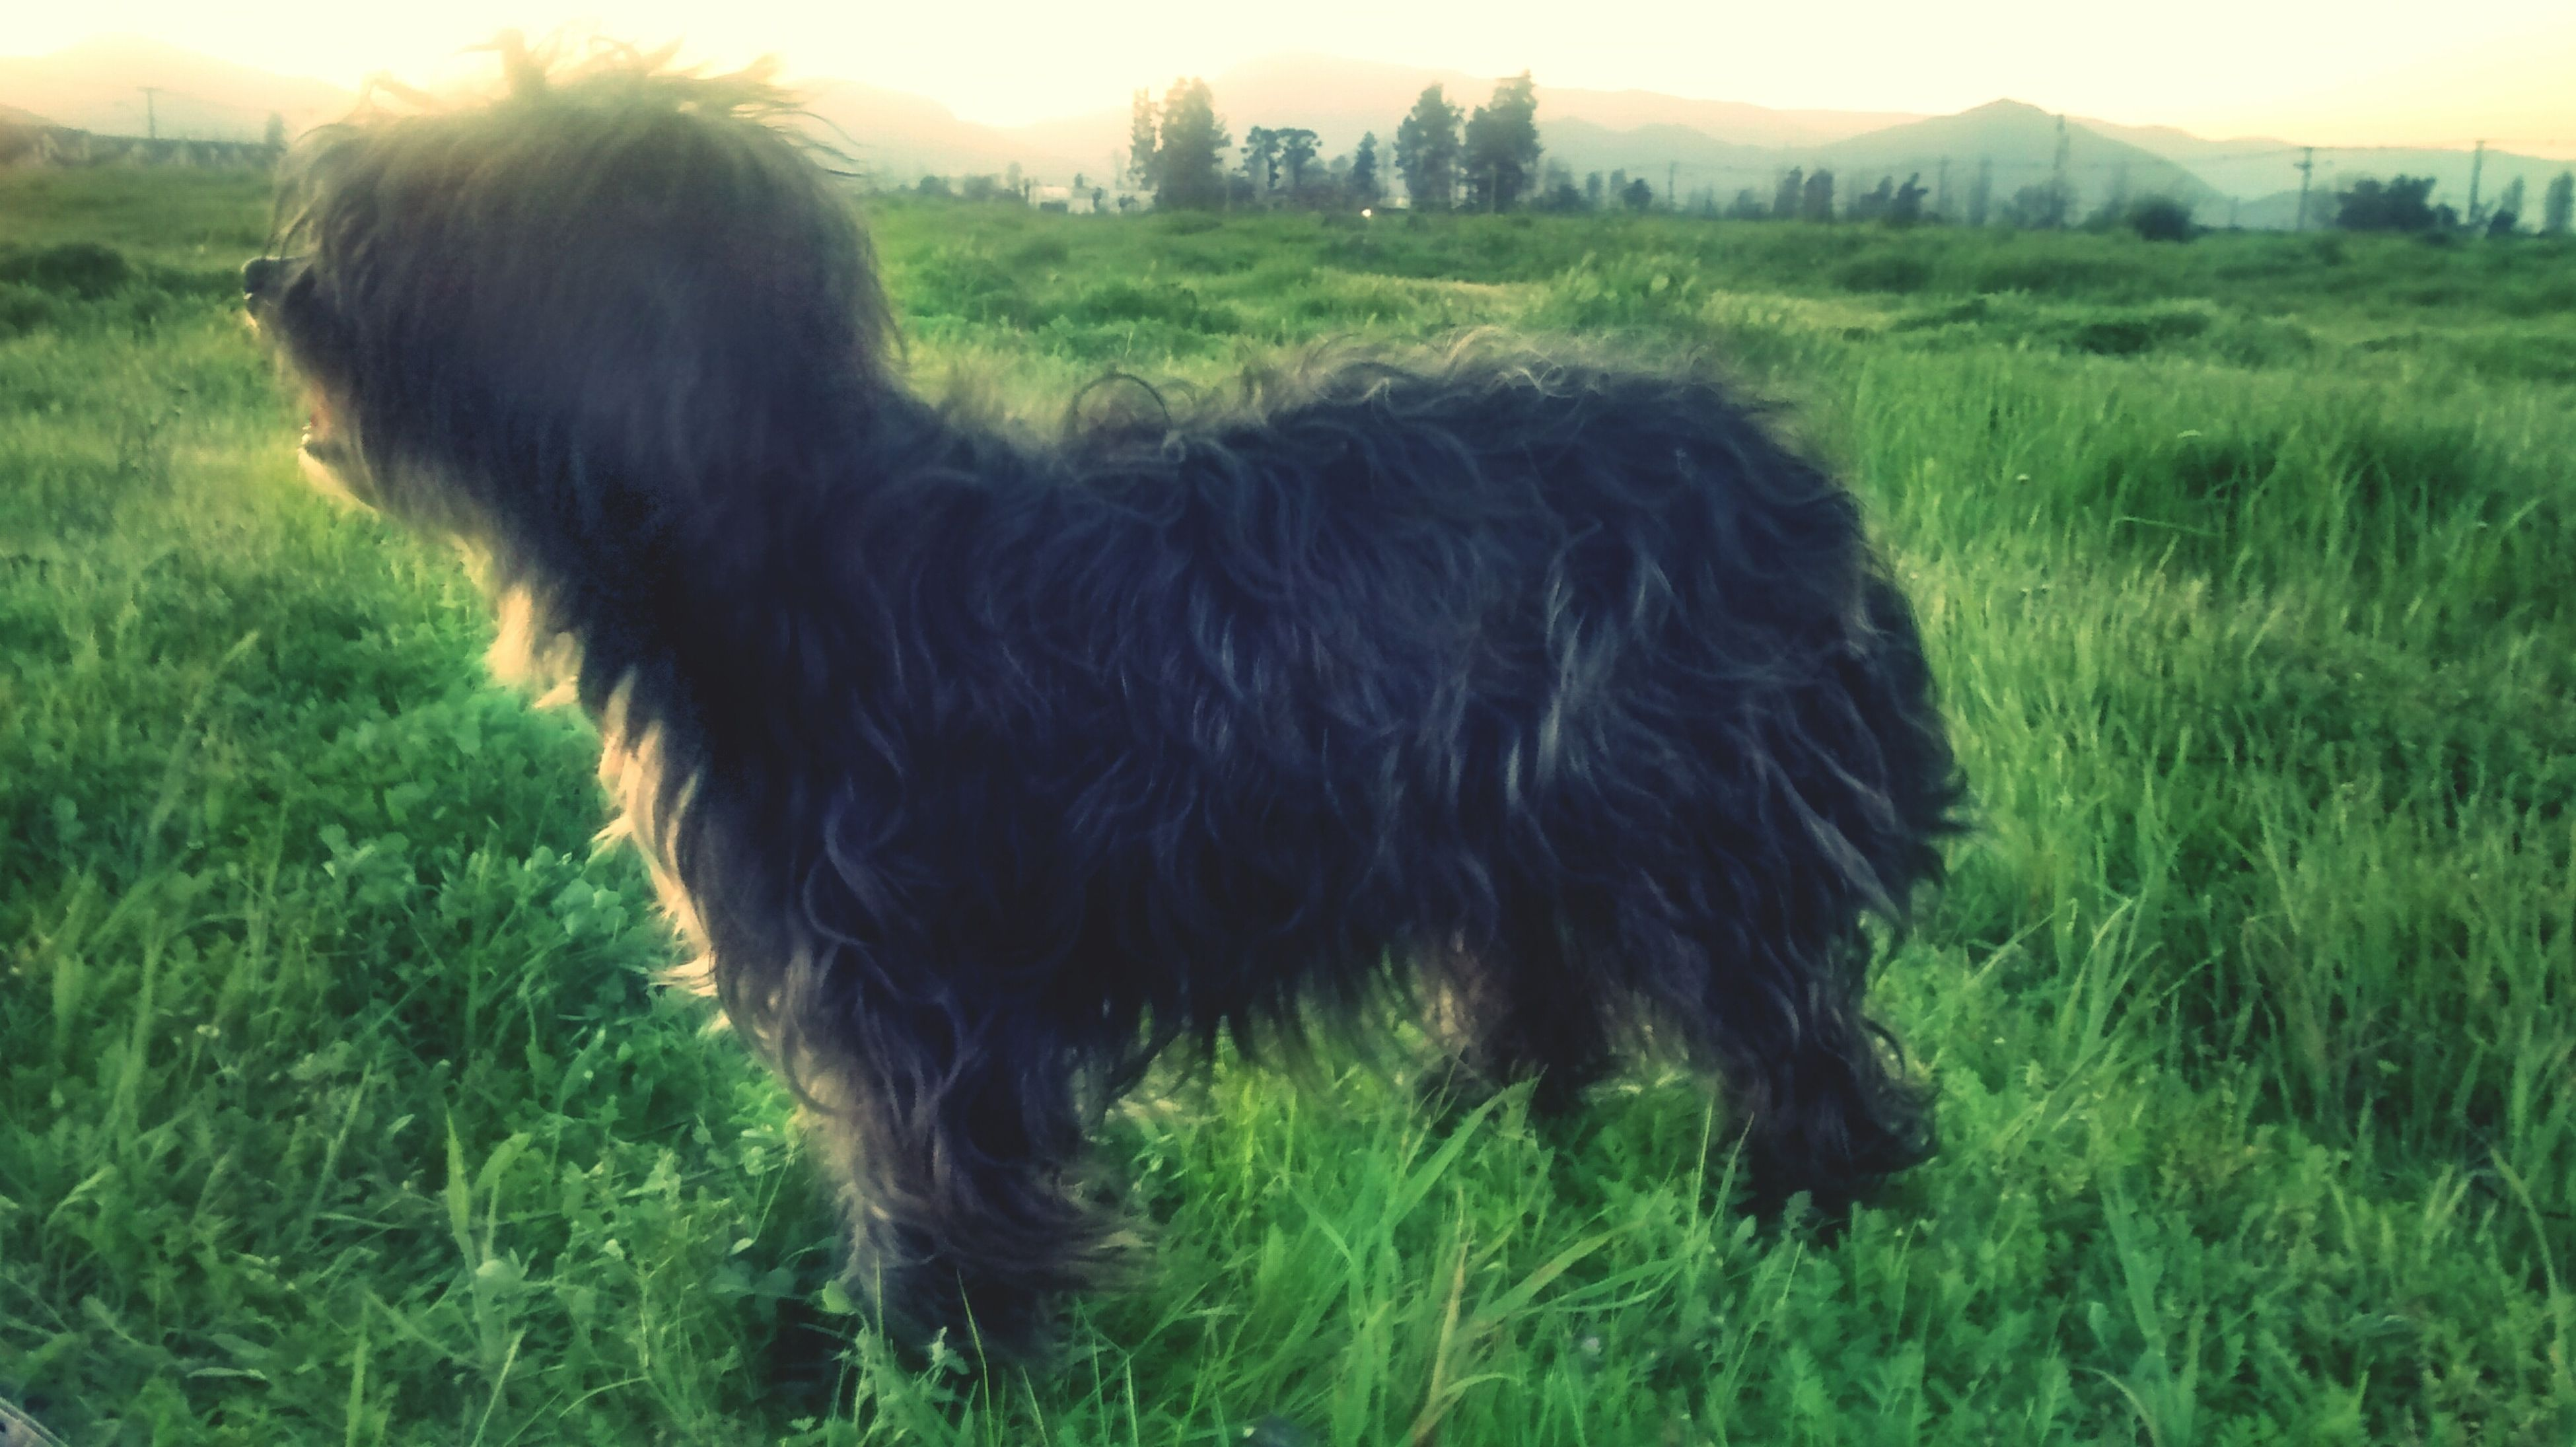 grass, domestic animals, animal themes, field, mammal, one animal, grassy, dog, pets, landscape, rural scene, growth, green color, nature, livestock, outdoors, farm, animal hair, day, no people